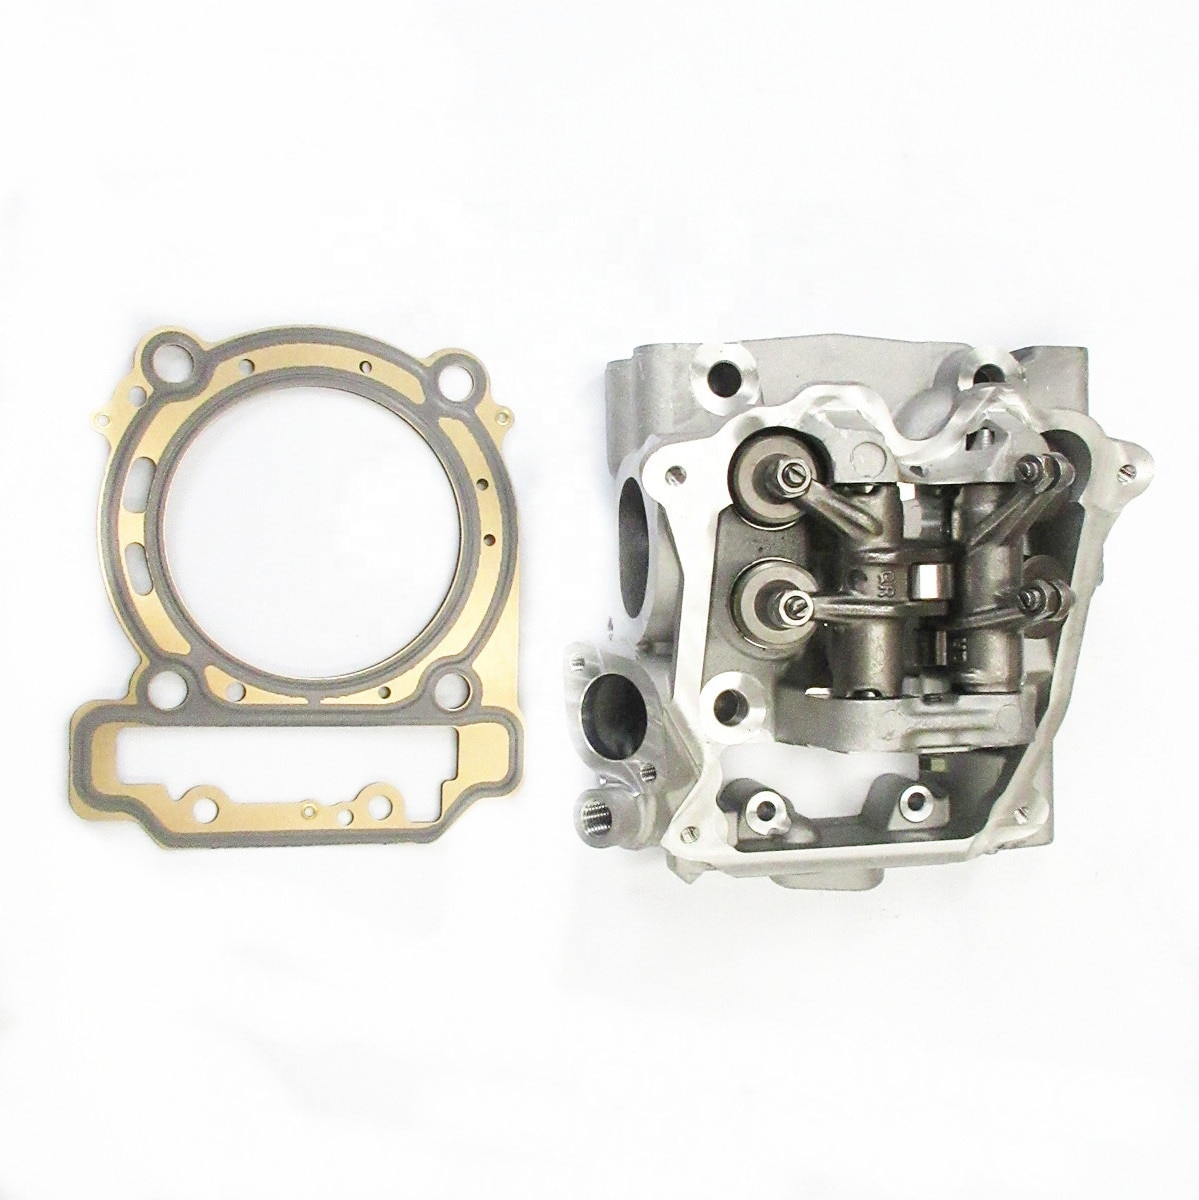 Odes Liangzi 800cc Rear Cylinder Head for ATV Quad 4x4 Engine Parts enlarge